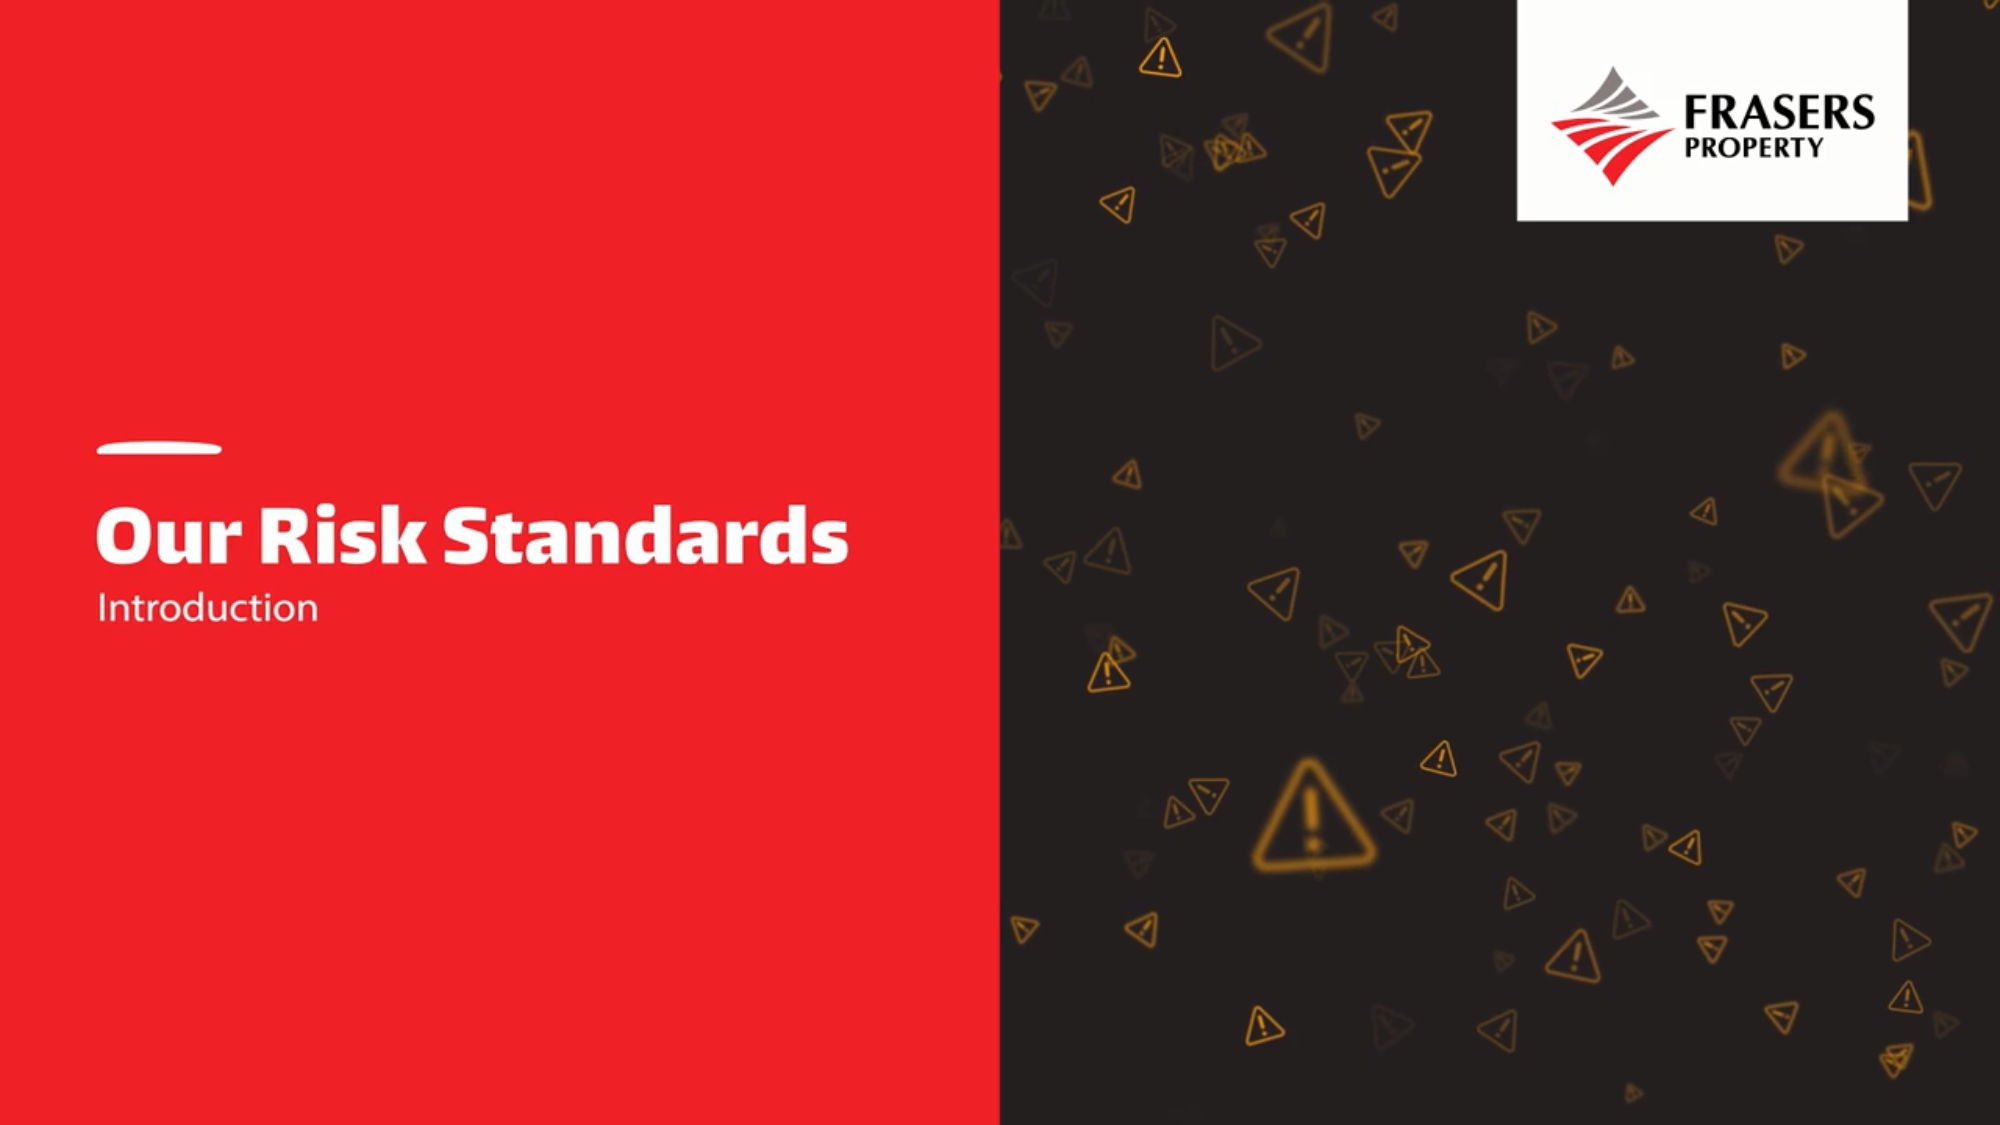 Introduction to Our Risk Standards